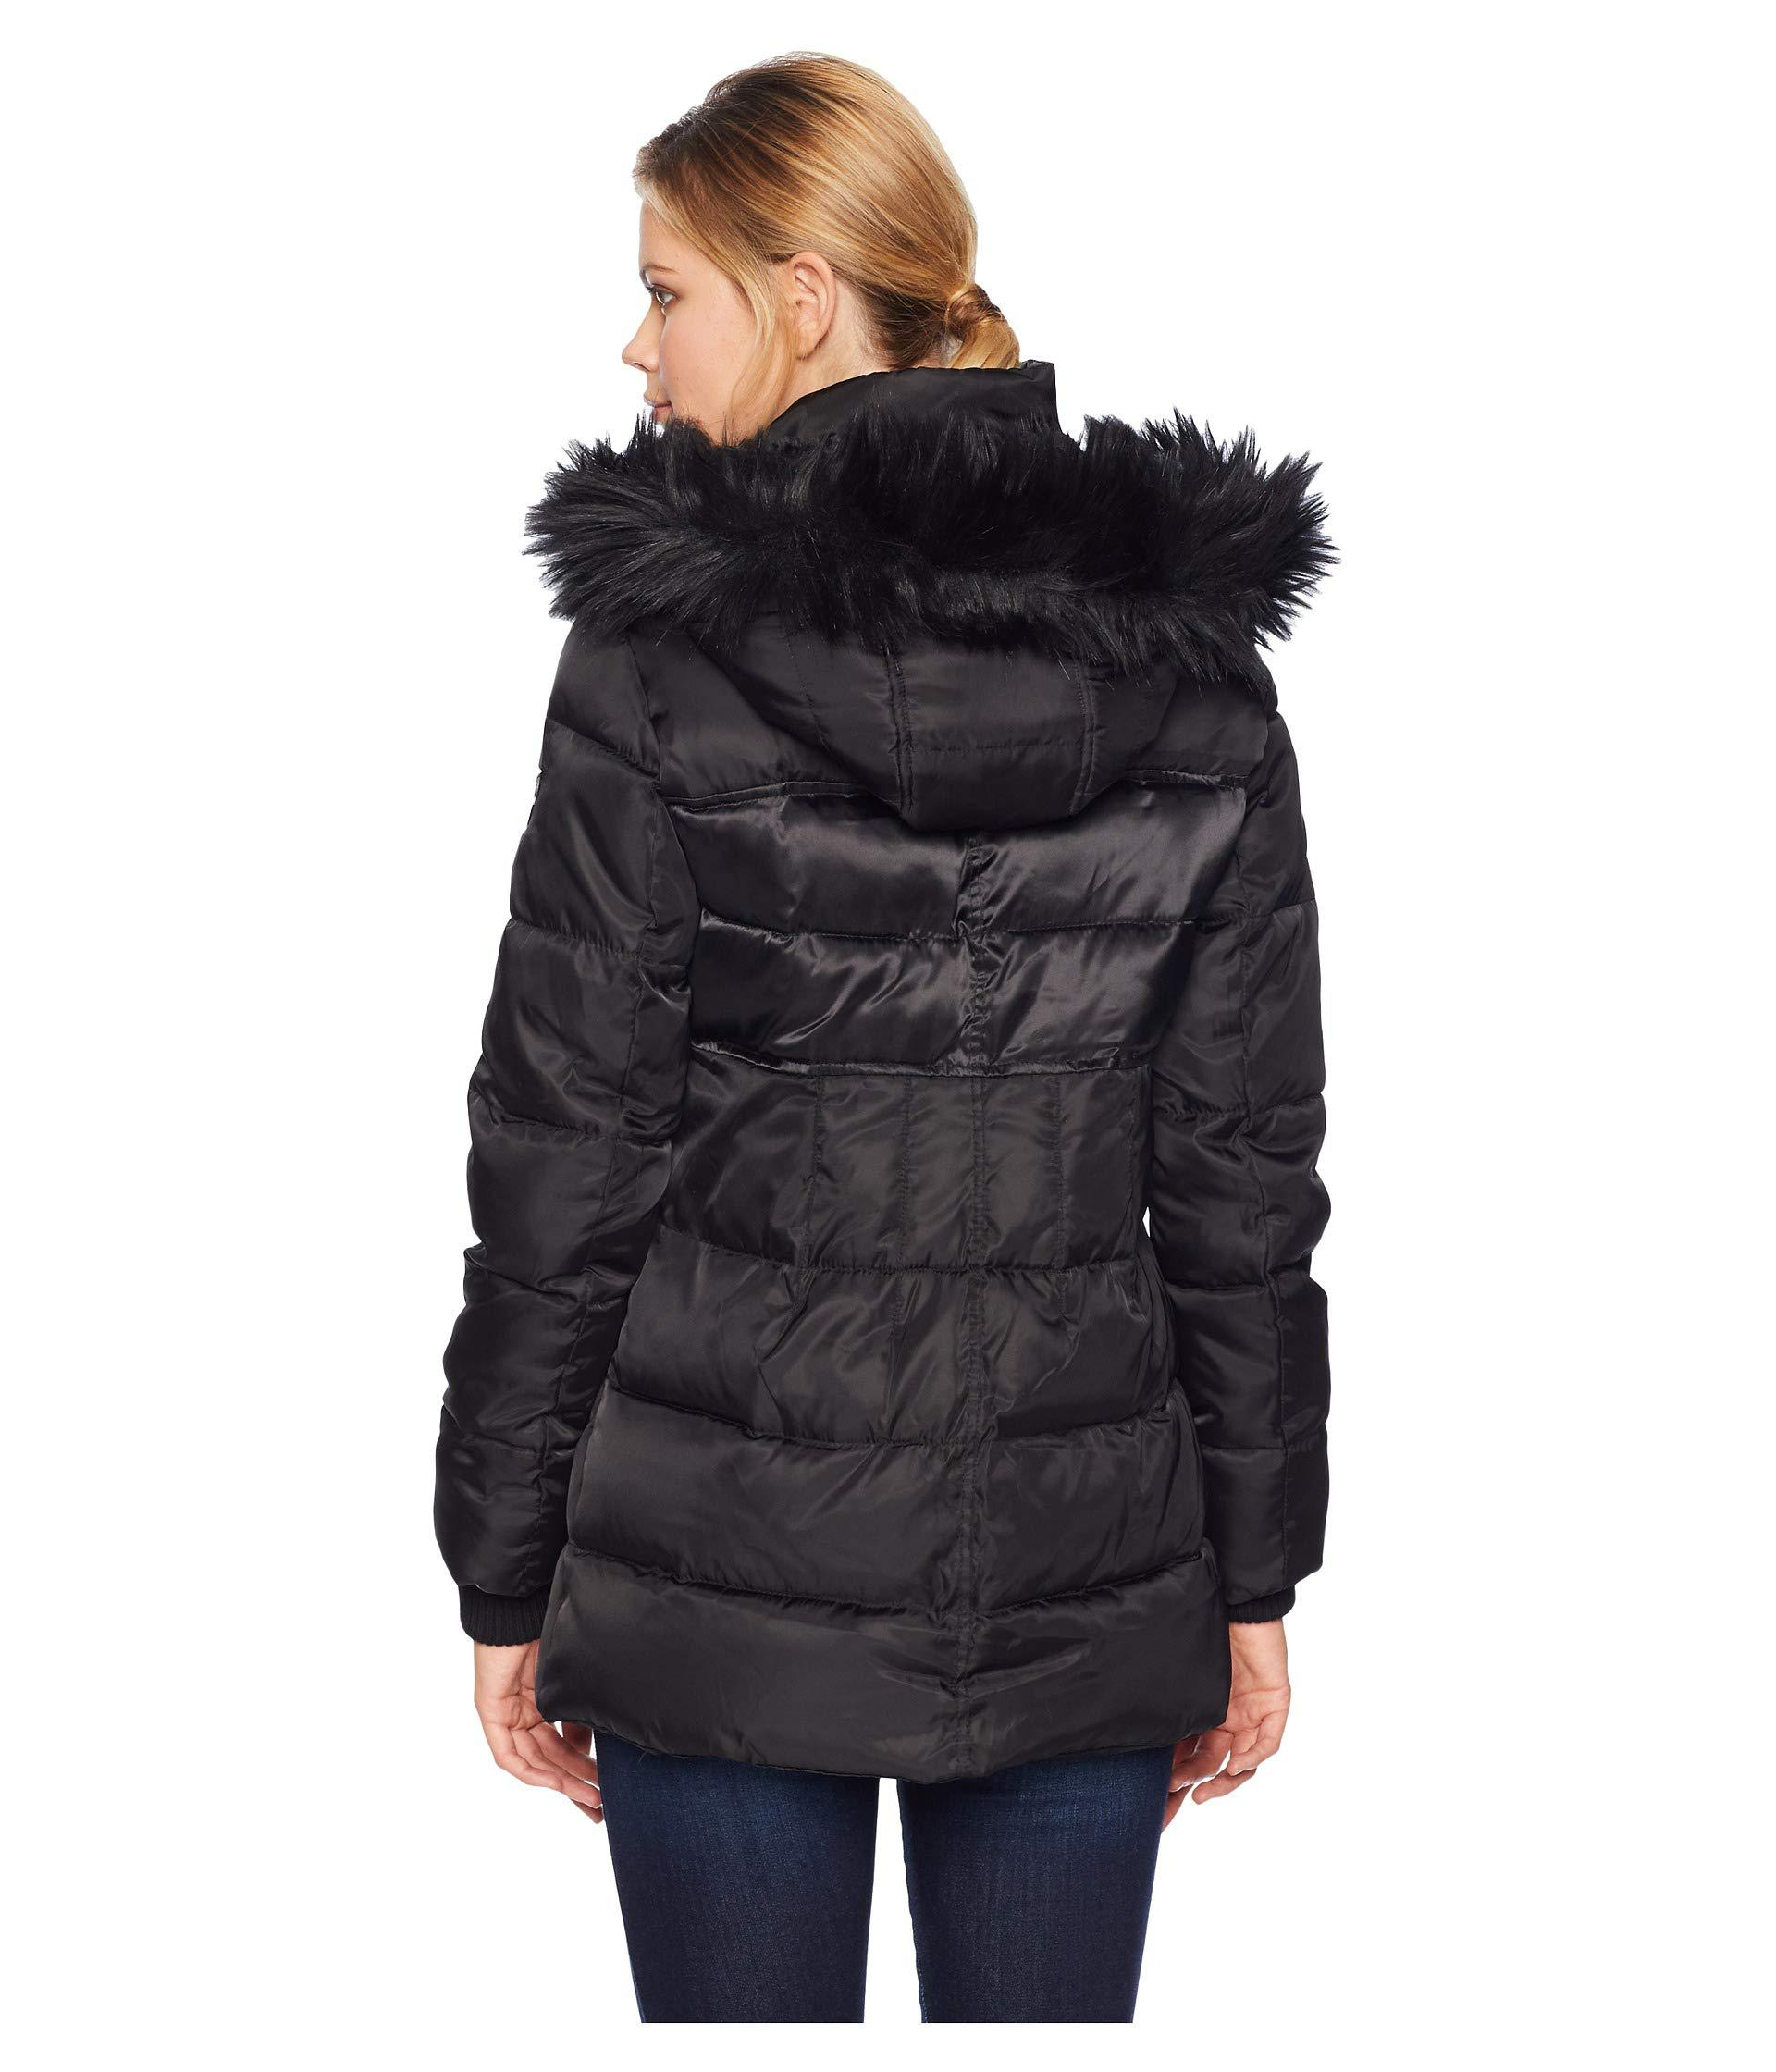 31c2ff7a7796ea Vince Camuto - Black Short Down Jacket With Storm Cuff And Faux Fur R1331  (tricolor. View fullscreen